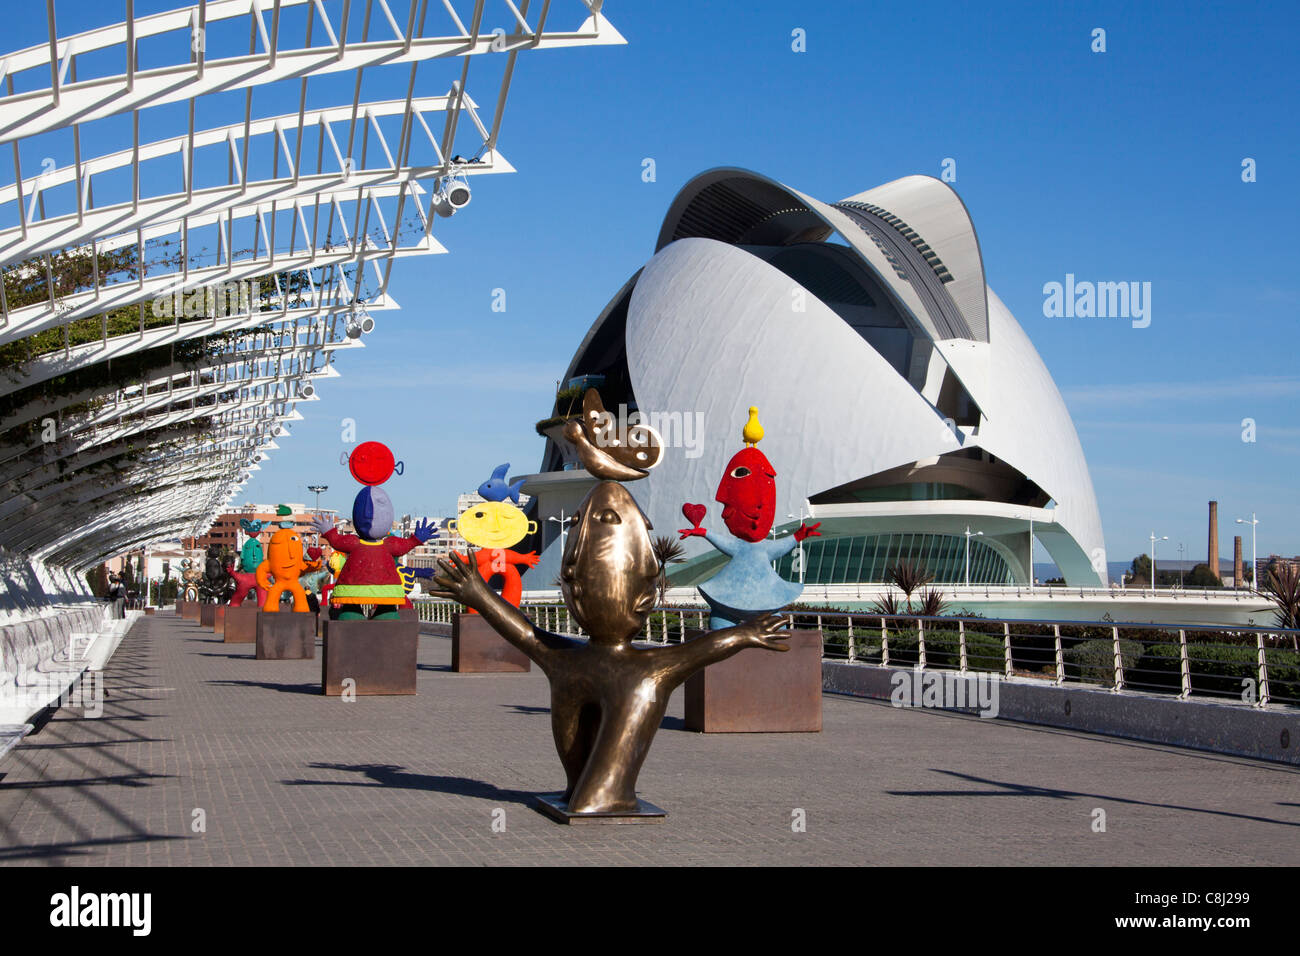 Spain, Europe, Valencia, City of Arts and Science, Calatrava, architecture, modern, Joan Ripolles, sculpture, arts, - Stock Image